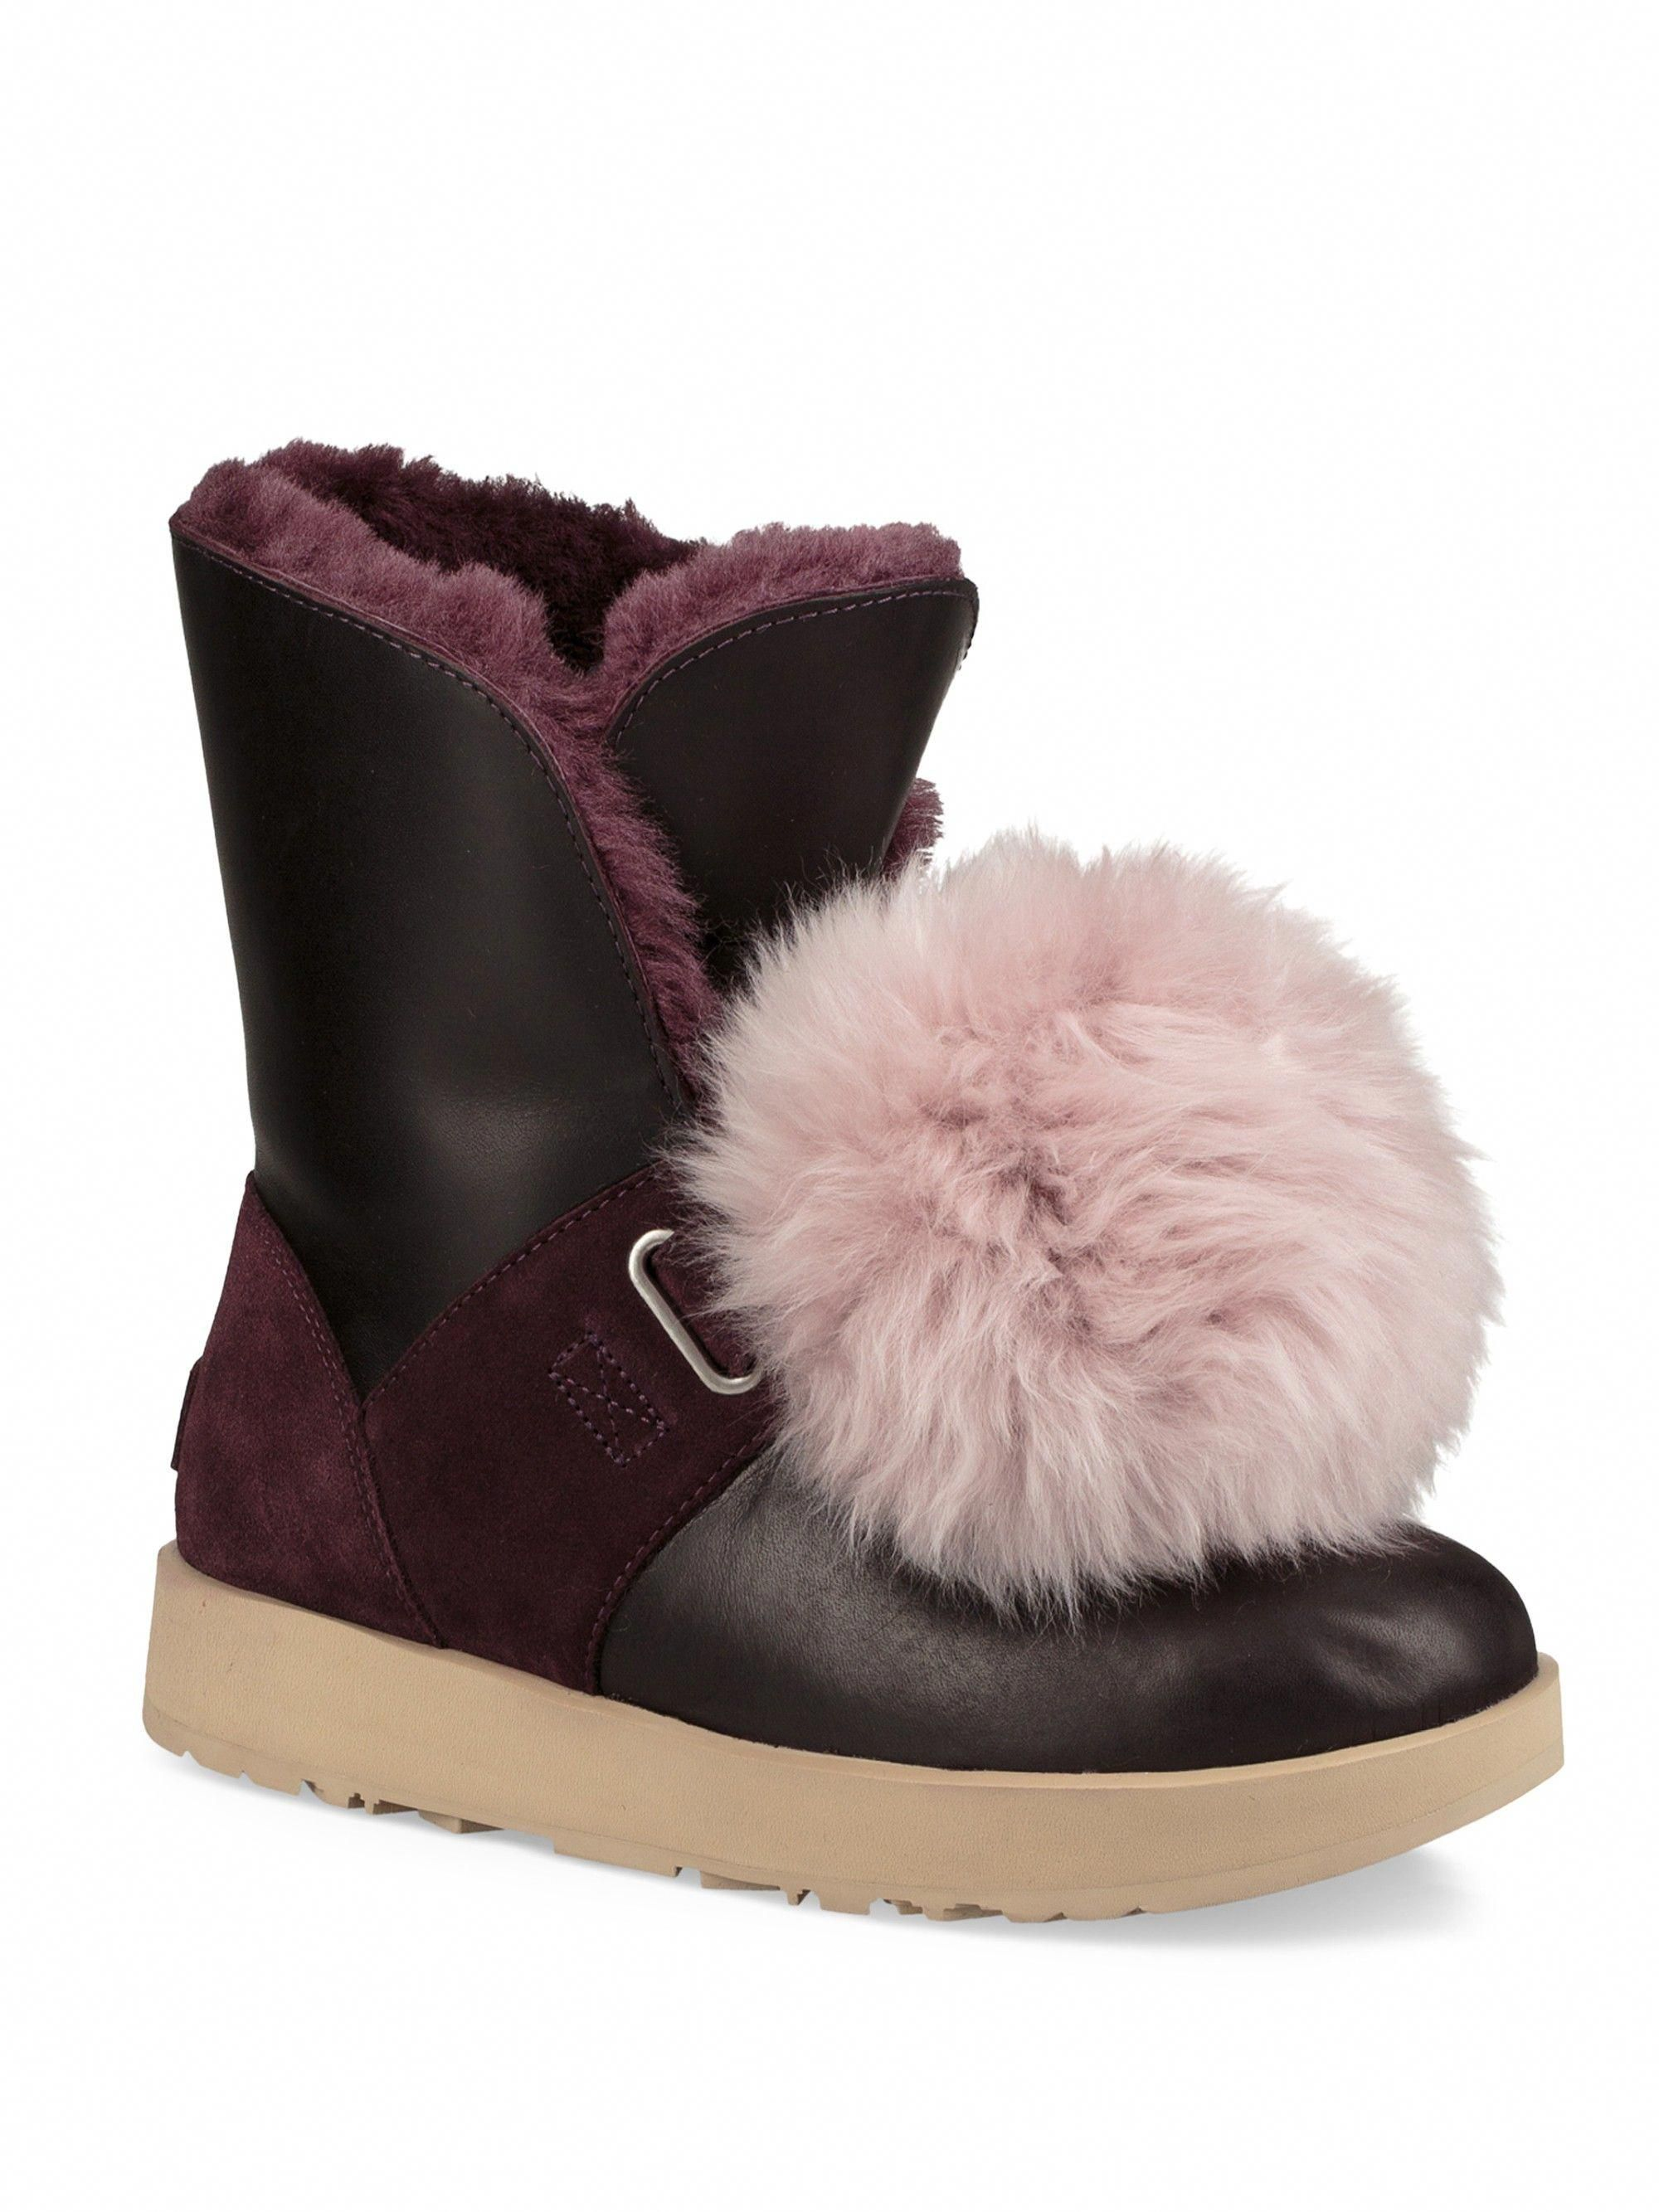 Ugg Australia Isley Pom Pom Waterproof Leather Boots